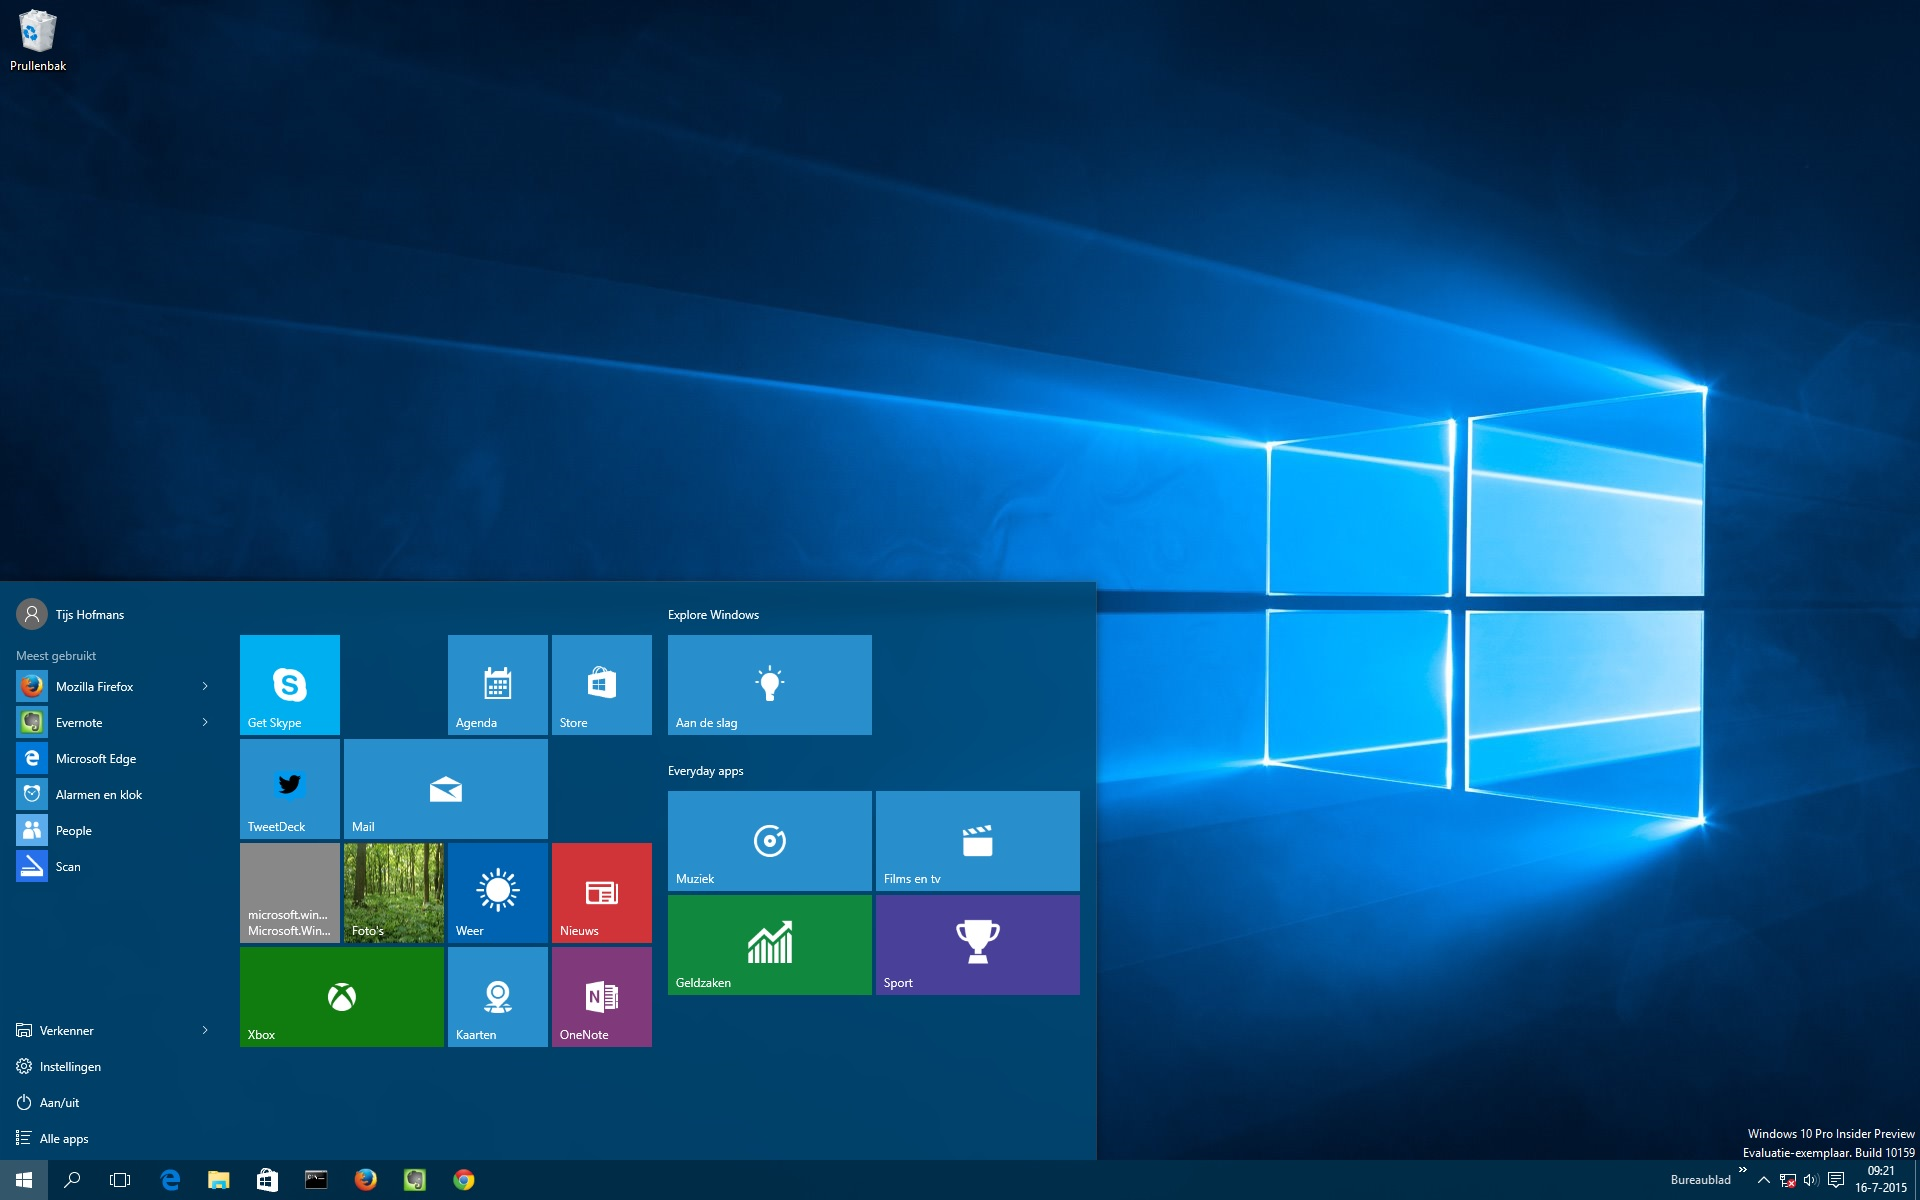 Windows 10 bureaublad aanpassen computer idee for Windows 8 bureaublad